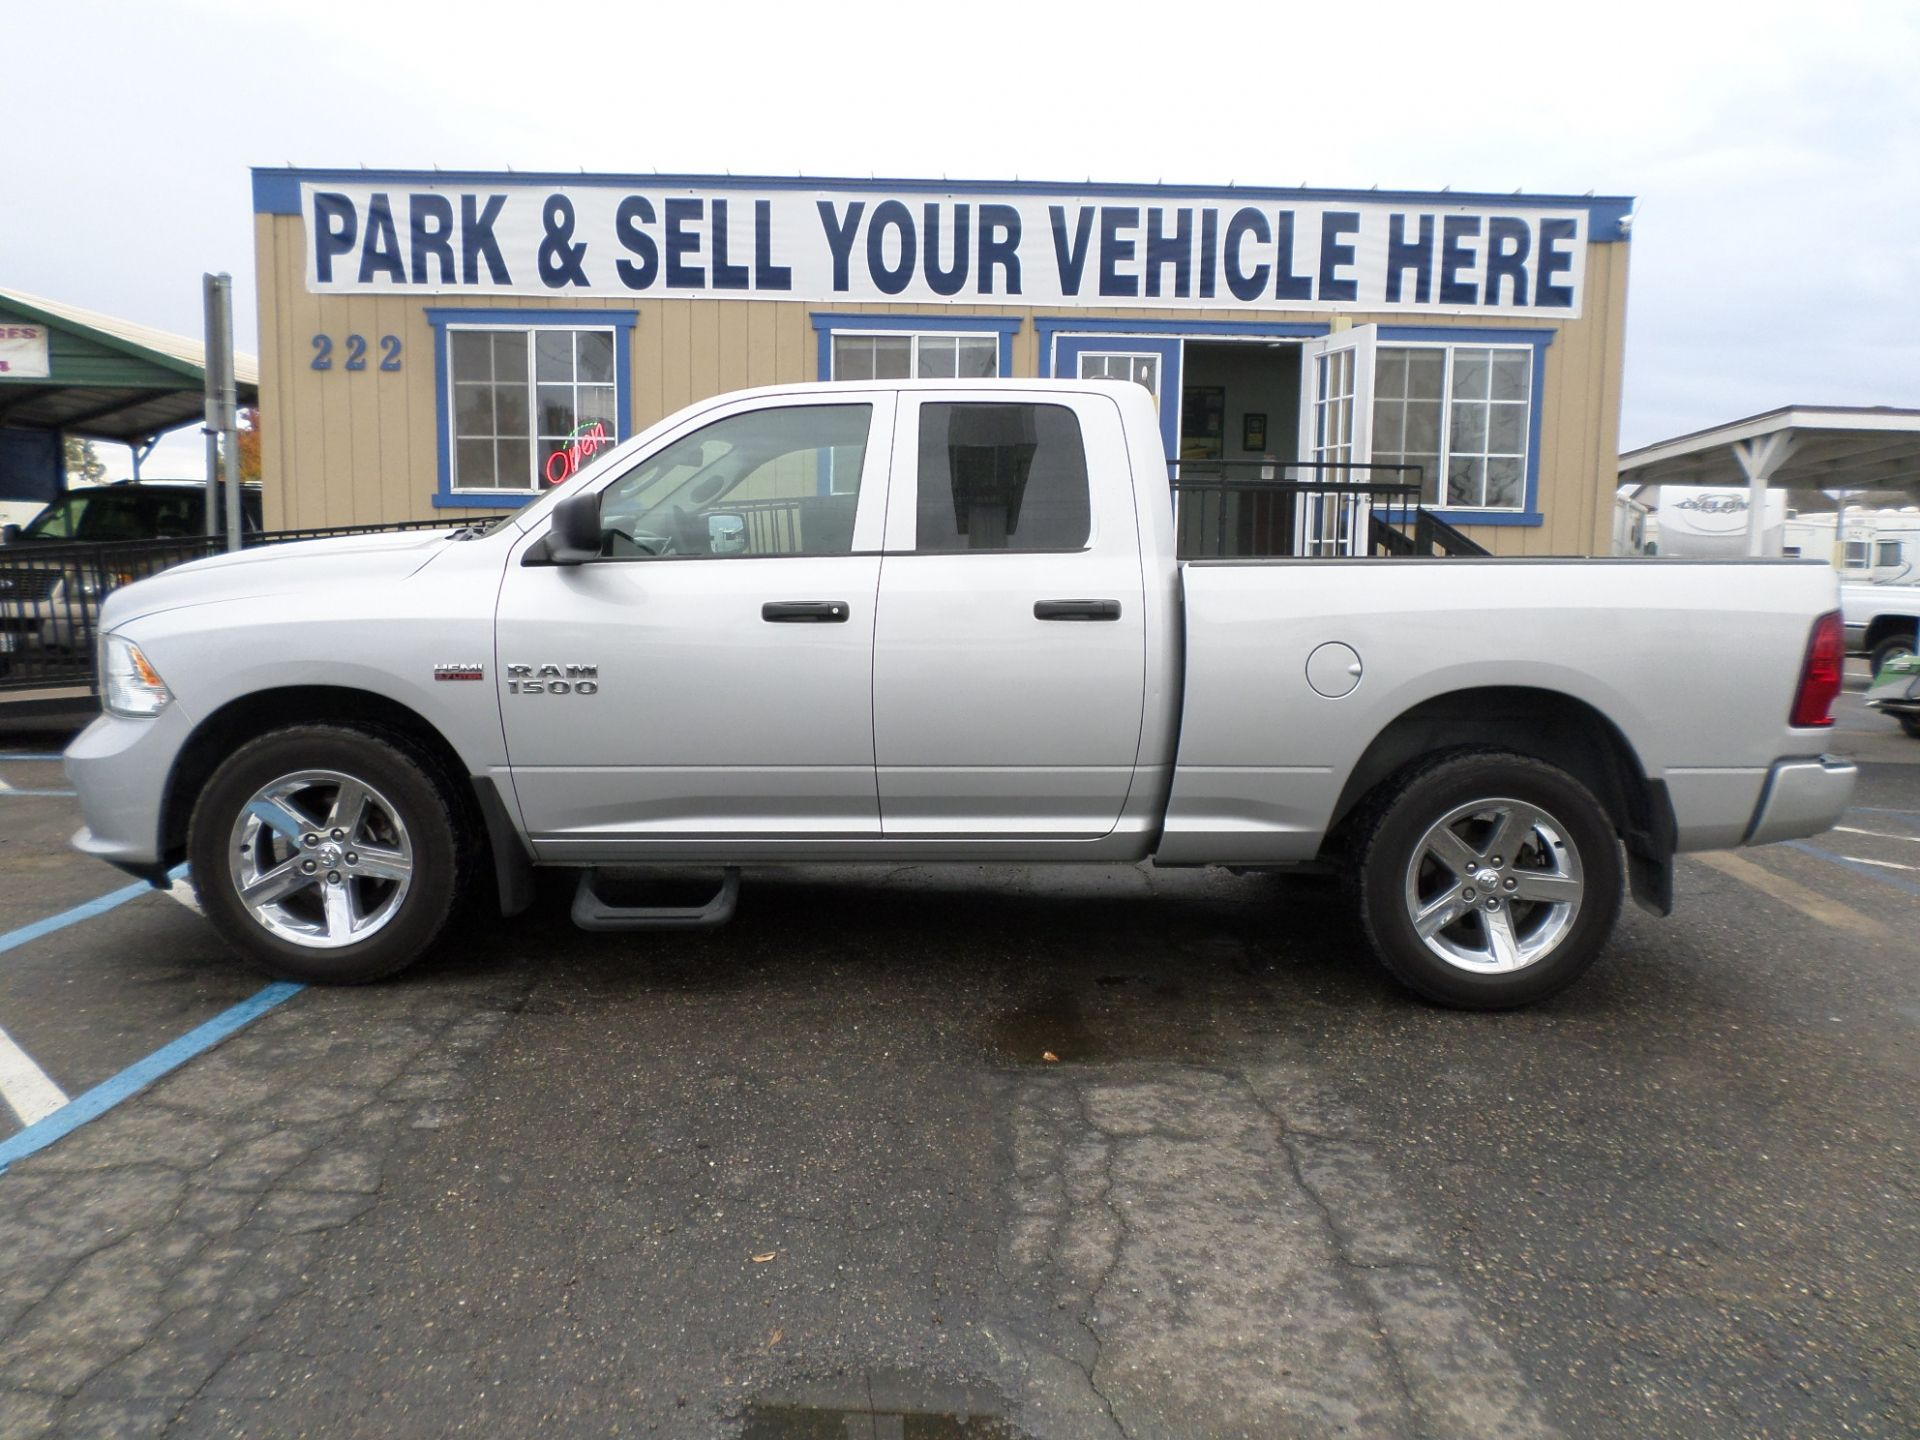 Truck For Sale 2014 Dodge Ram 1500 Quad Cab Short Bed In Lodi Stockton Ca Ram 1500 Quad Cab Dodge Ram 1500 Ram 1500